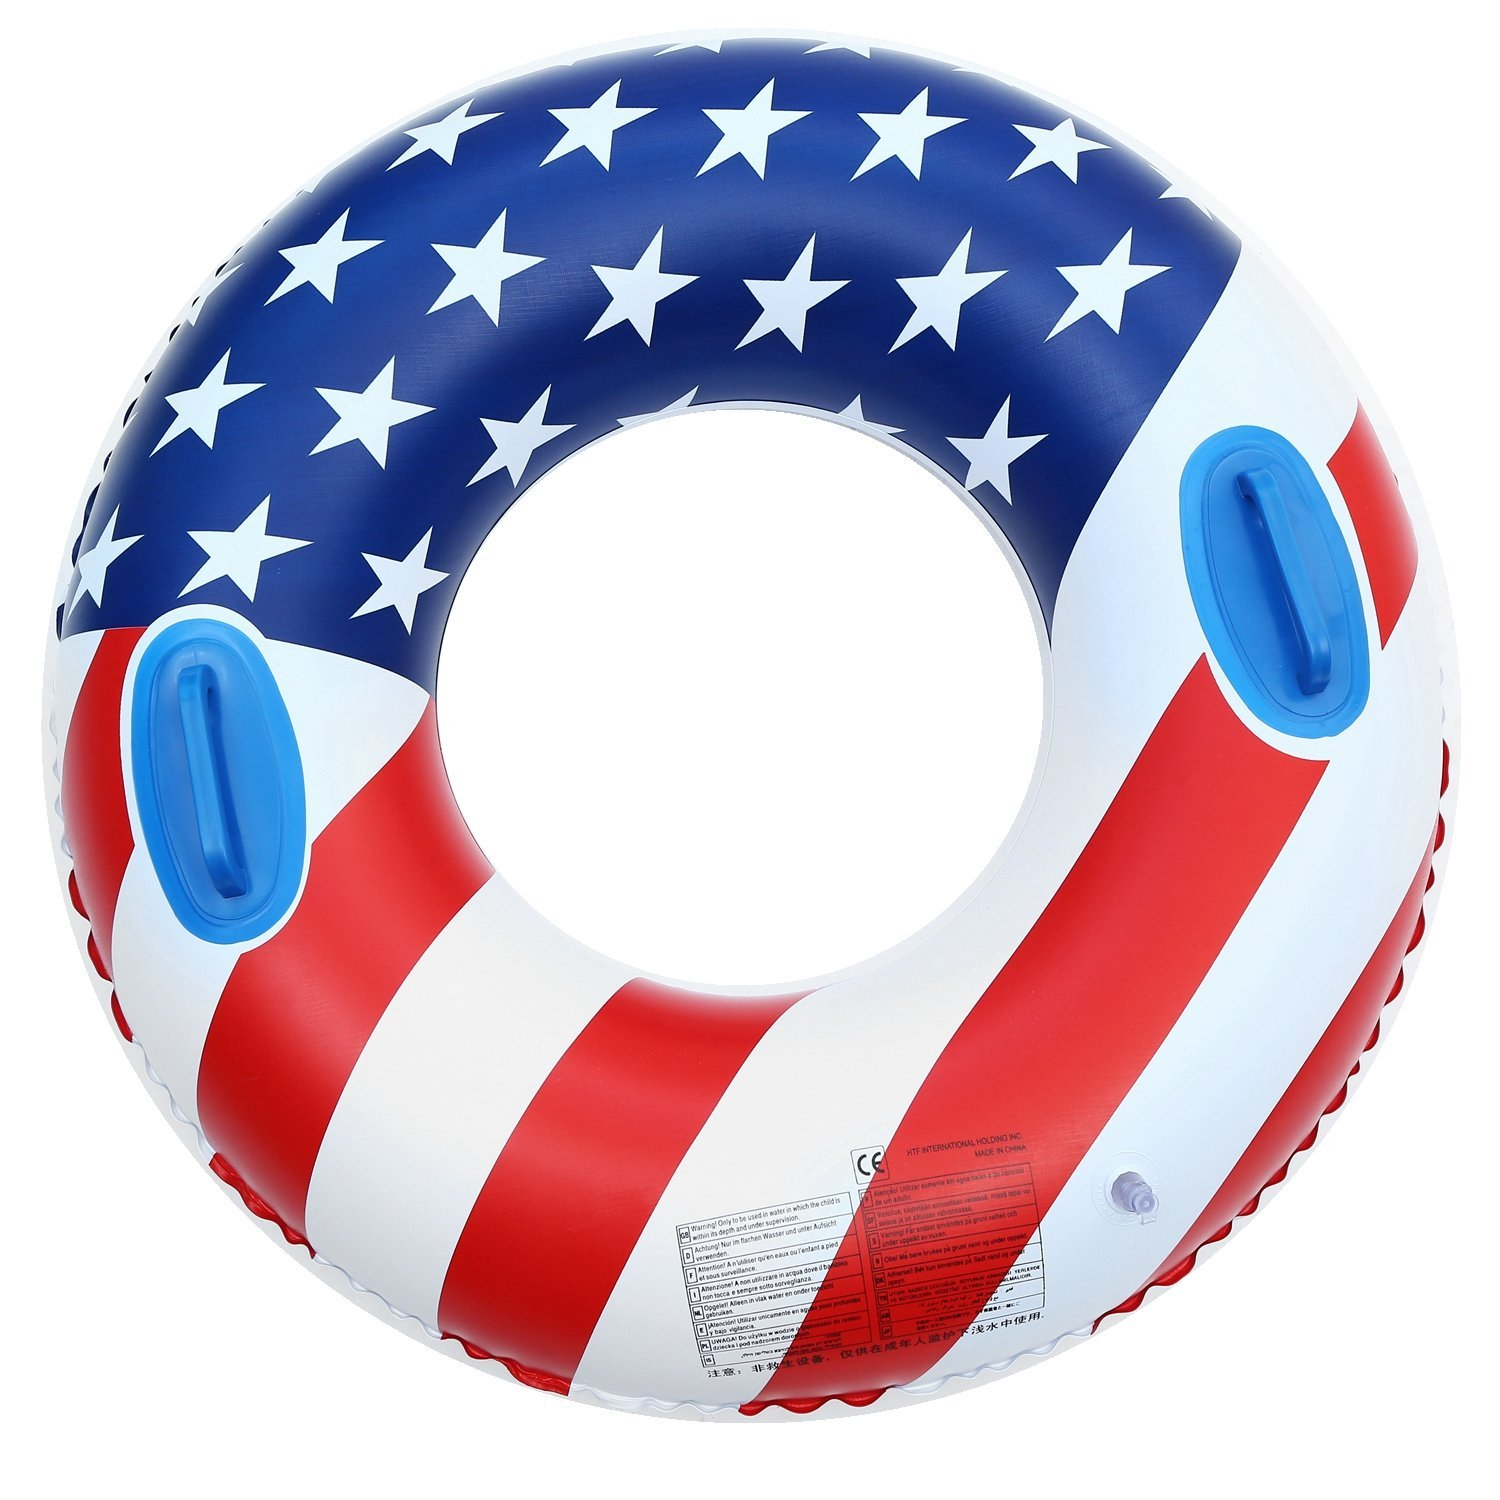 riffspheres gigantic donut pool float raft red summer giant inflatable donut pool floats tube with frosting